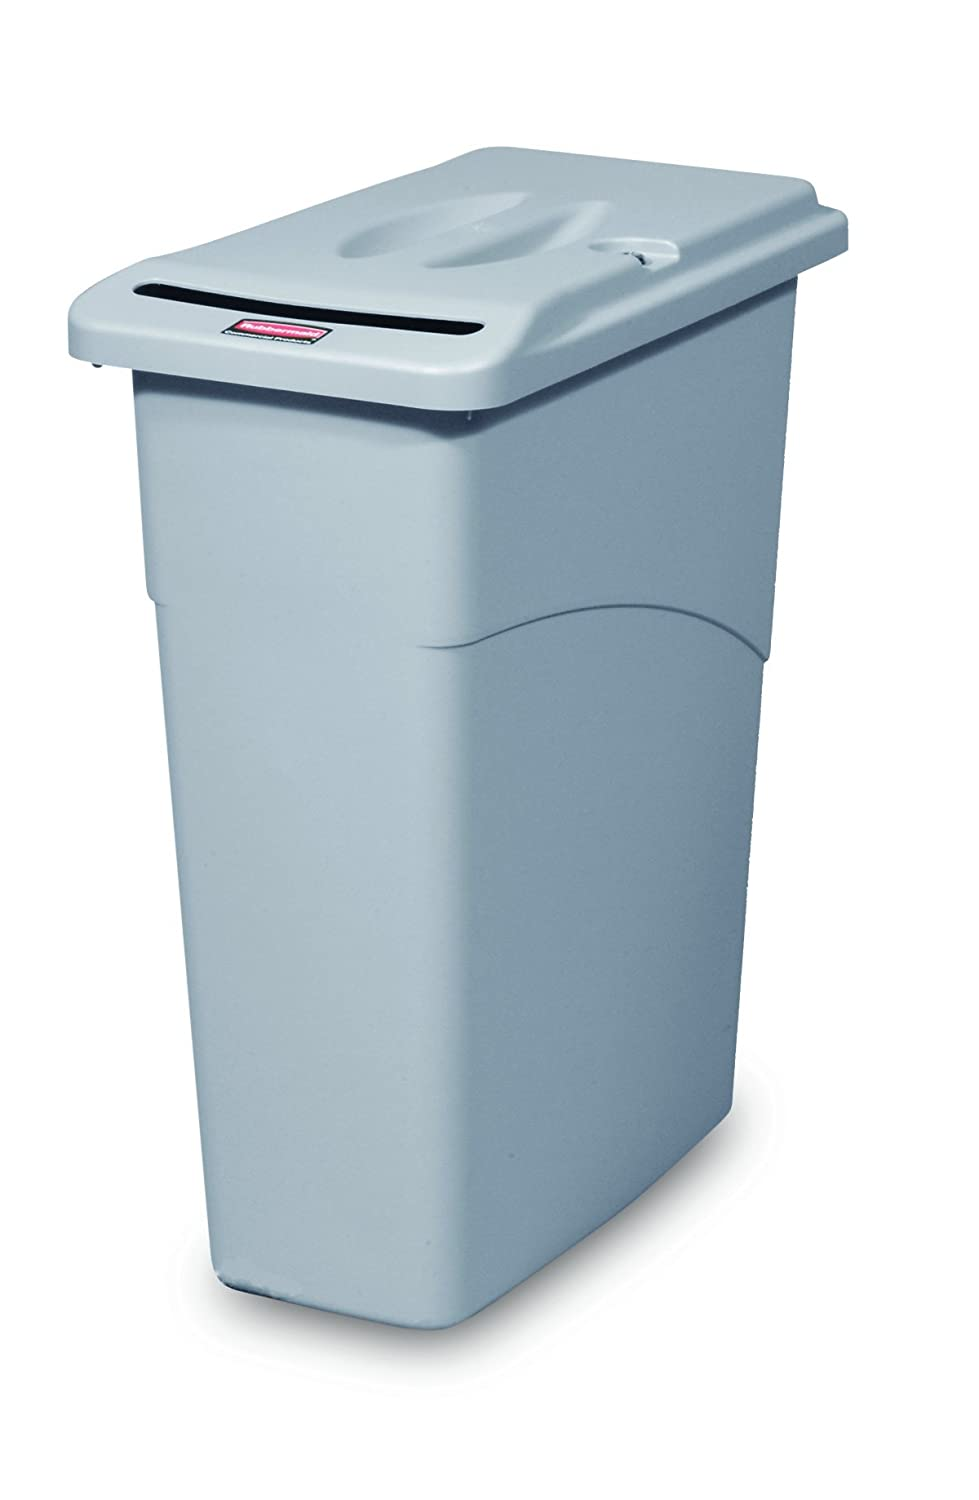 Rubbermaid Slim Jim Recycling Container with Handles, 60 L - Blue FG354173BLUE